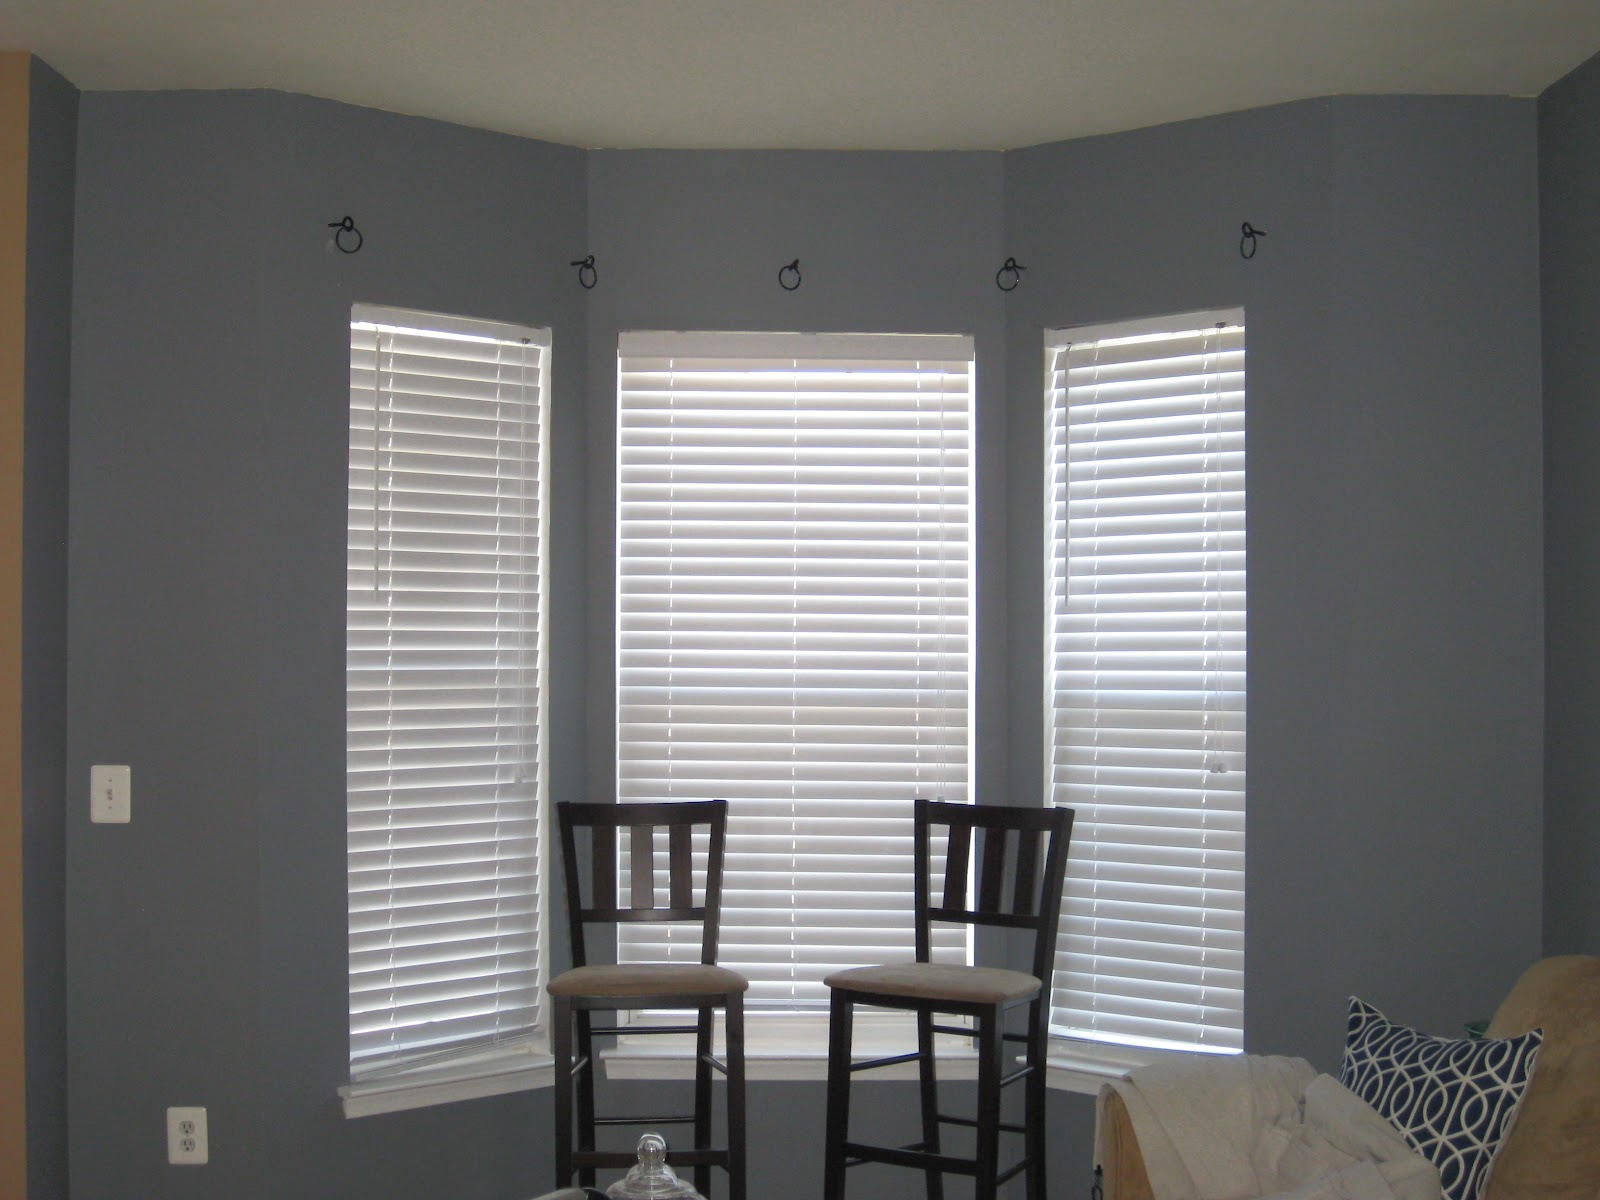 z search clear arch crystal ft to results curtain interiordecorating made measure rod graber curtains